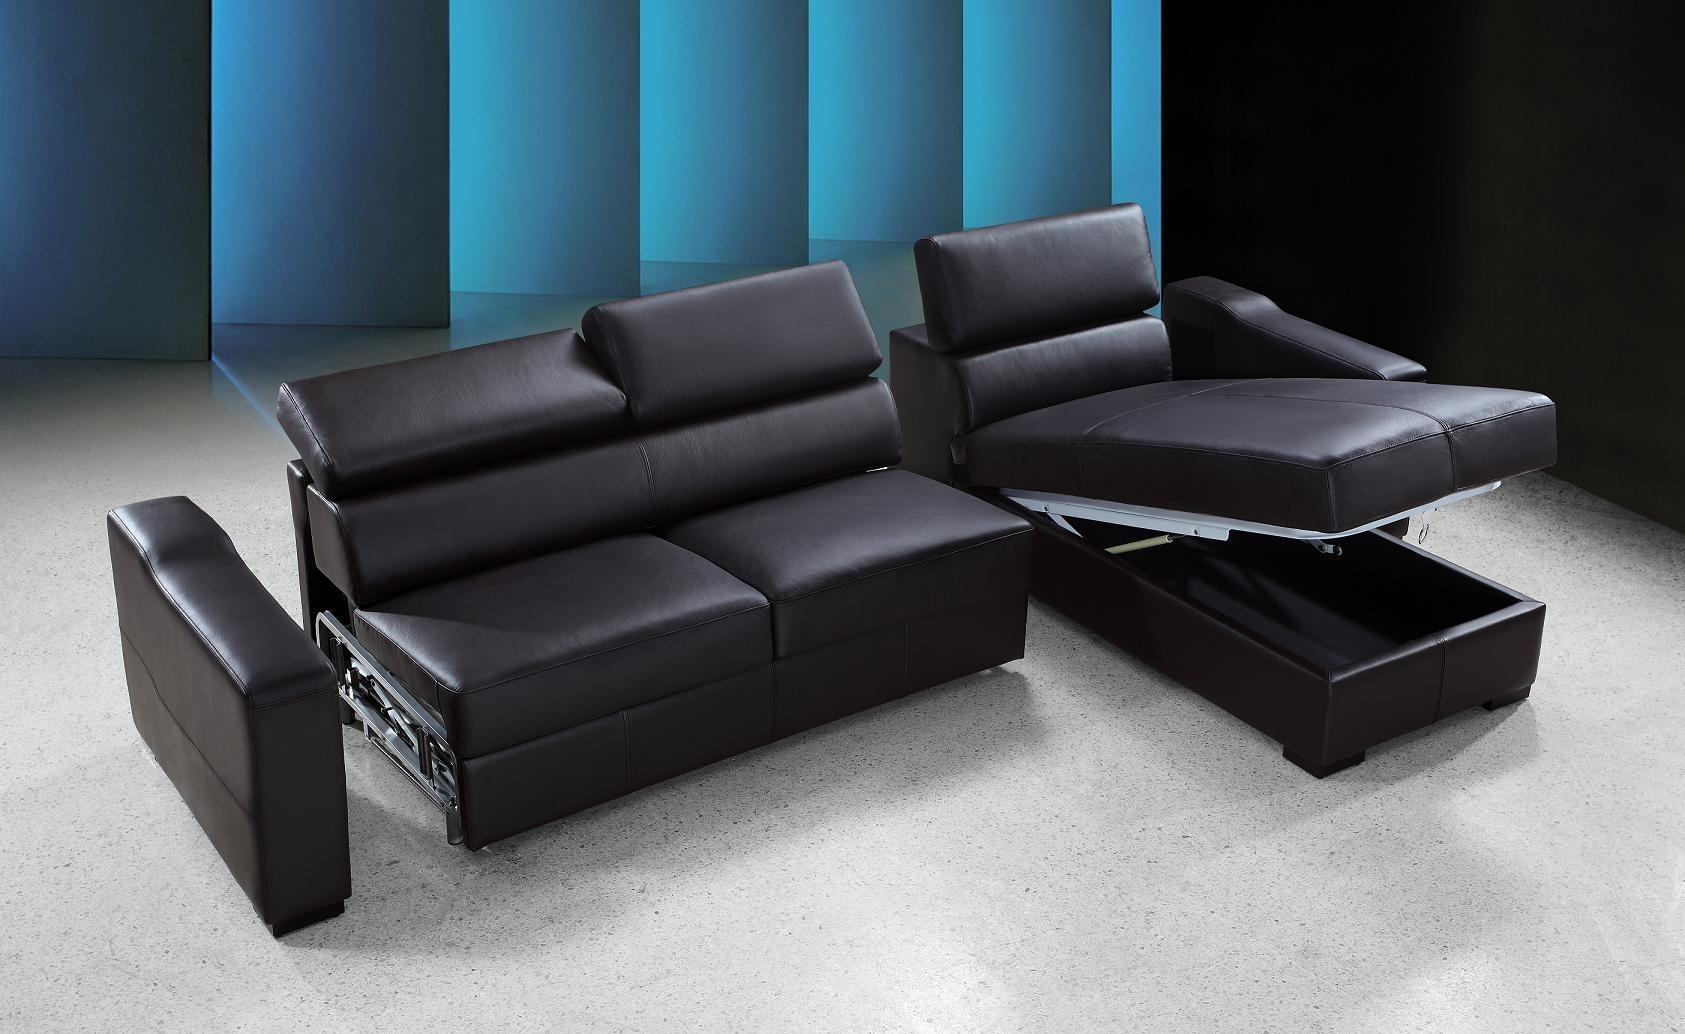 Flip Reversible Espresso Leather Sectional Sofa Bed W/ Storage With Sectional Sofa Bed With Storage (Image 9 of 20)